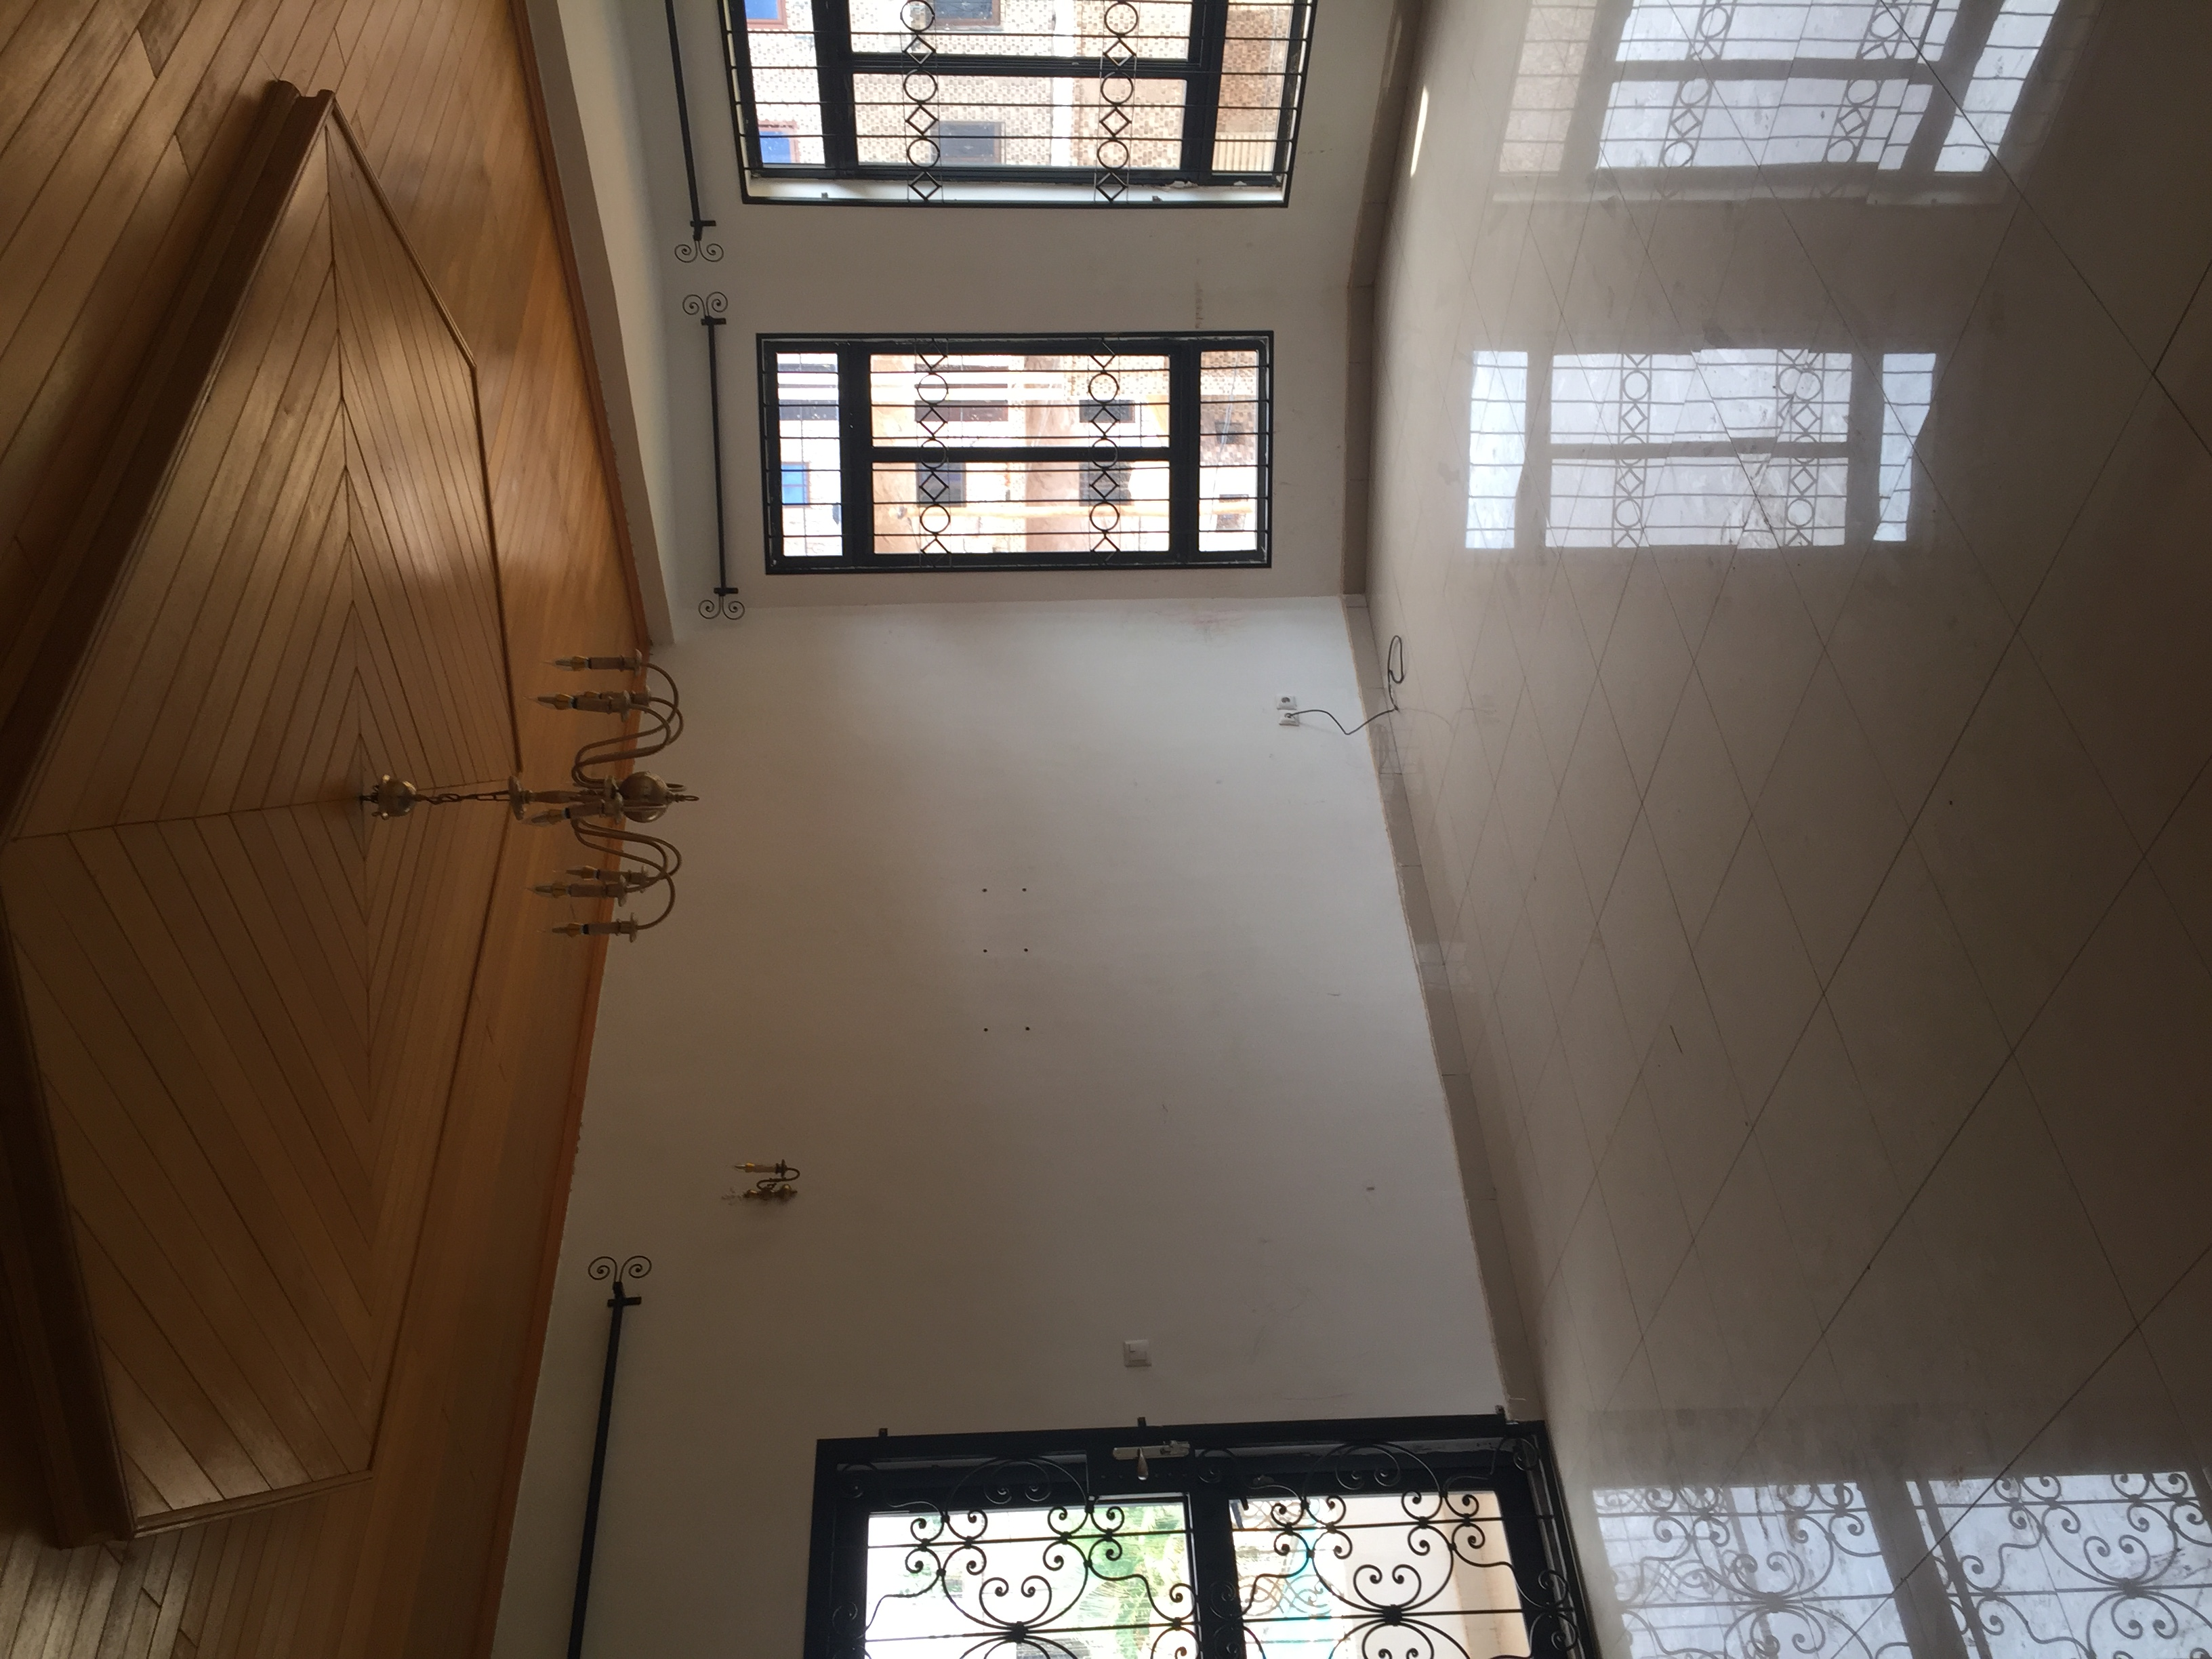 Apartment to rent - Yaoundé, Mfandena, Derrière stade omnisports - 1 living room(s), 3 bedroom(s), 2 bathroom(s) - 350 000 FCFA / month